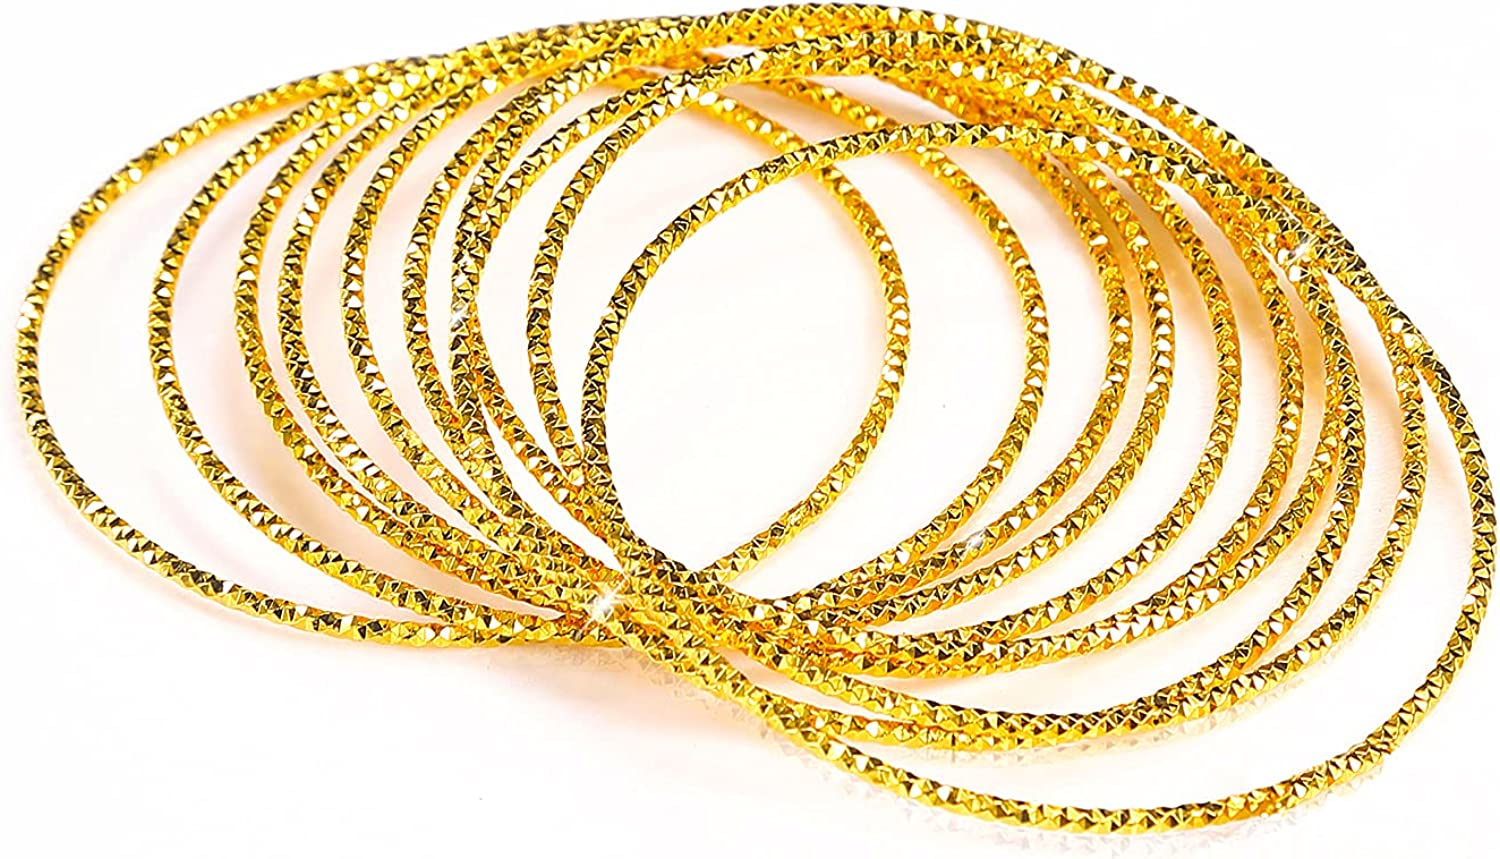 TBYOYi 24k Real Gold Plated Bracelet For Women Set (3pieces), Wonderful Festival Gift For Mum, Sister, Daughter, Friends